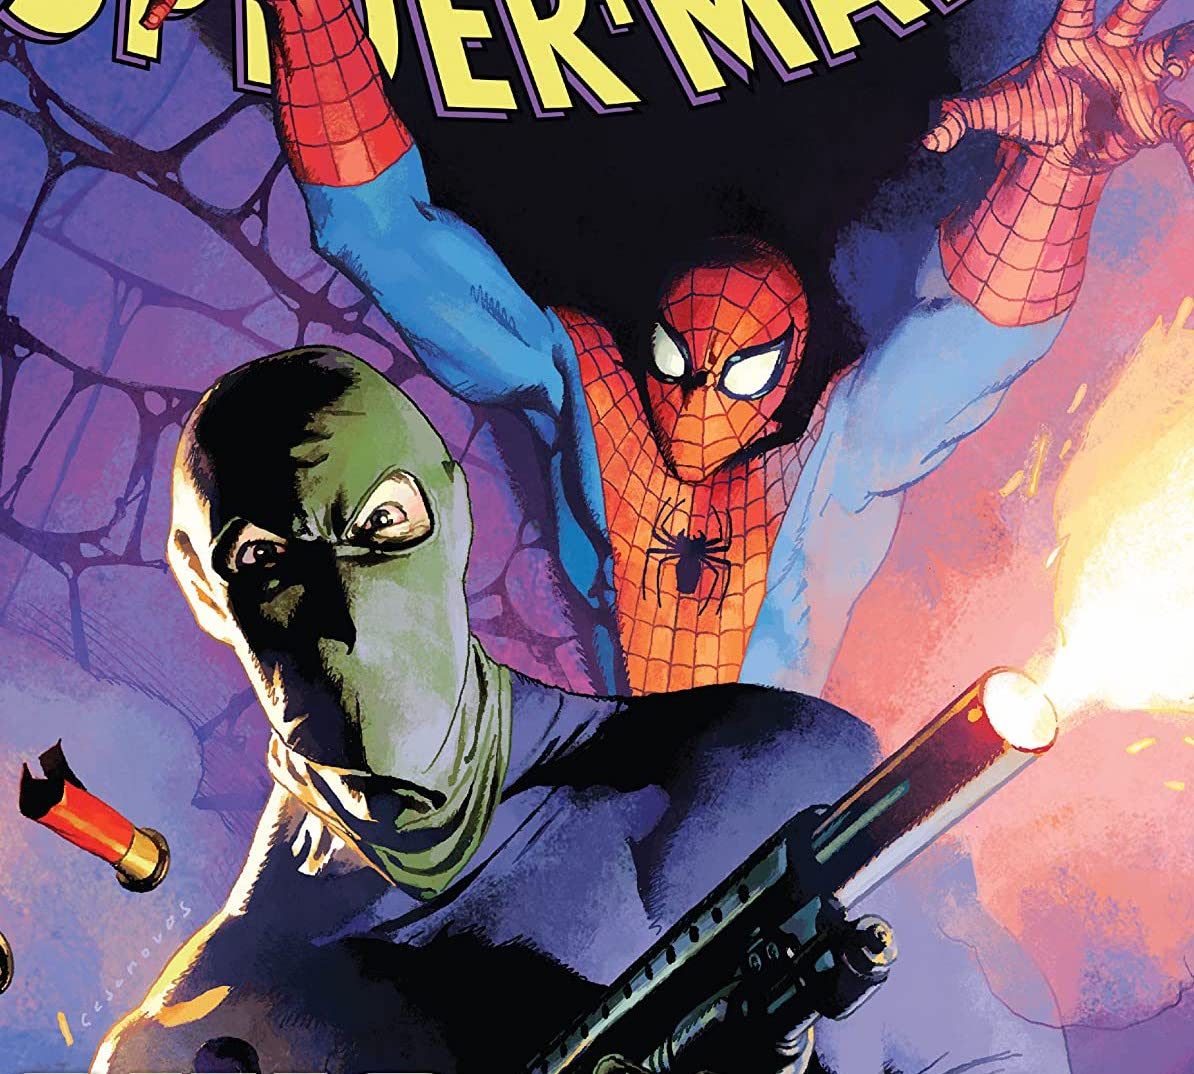 'Amazing Spider-Man' #45 review: Sets up a strong story arc